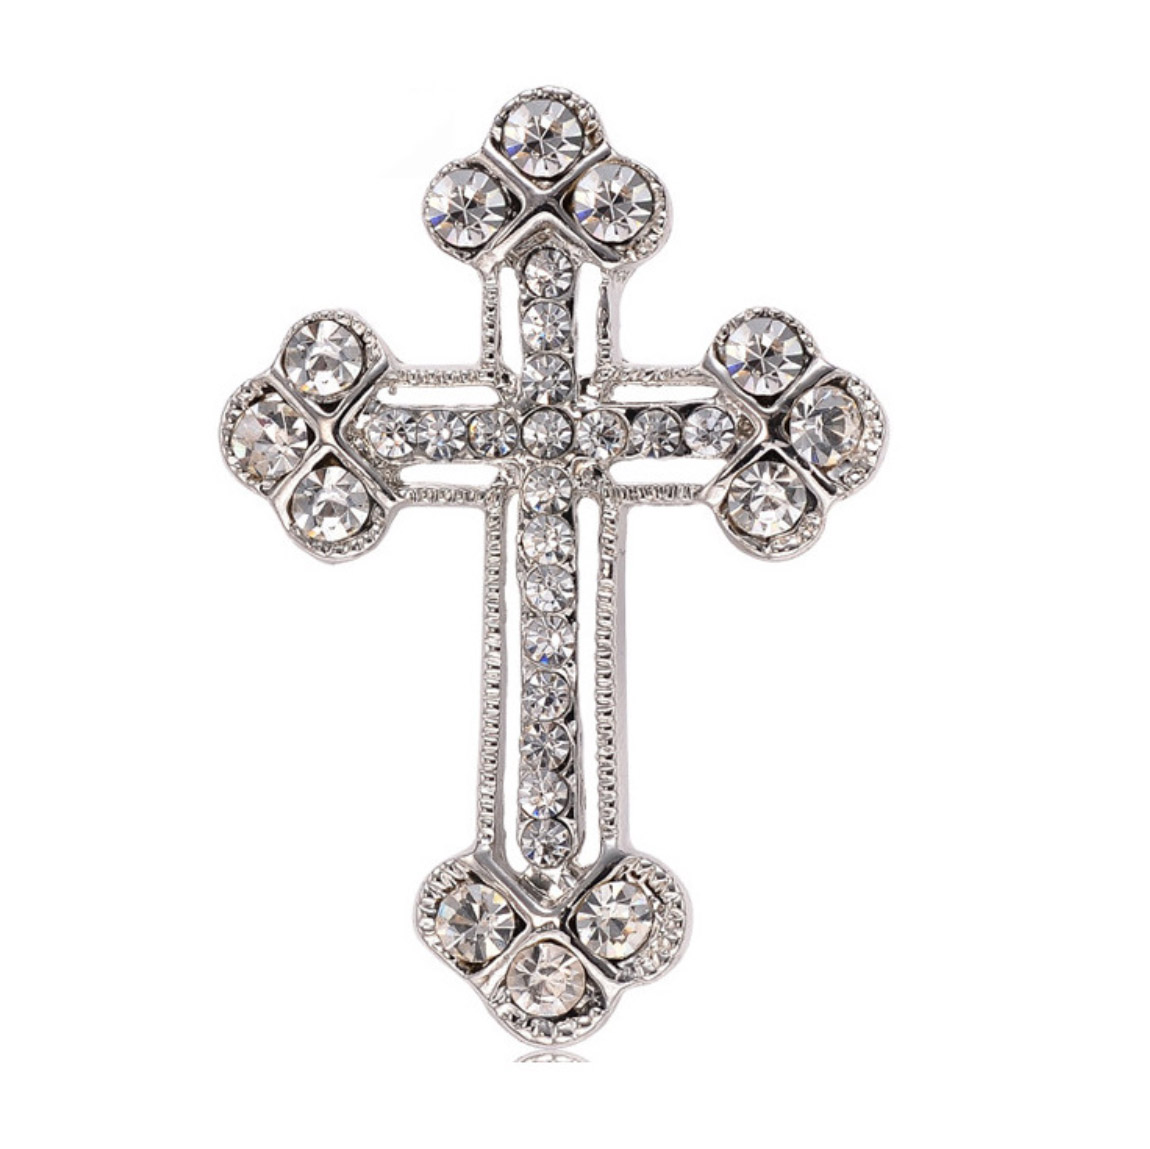 Cross brooch to embellish invitations